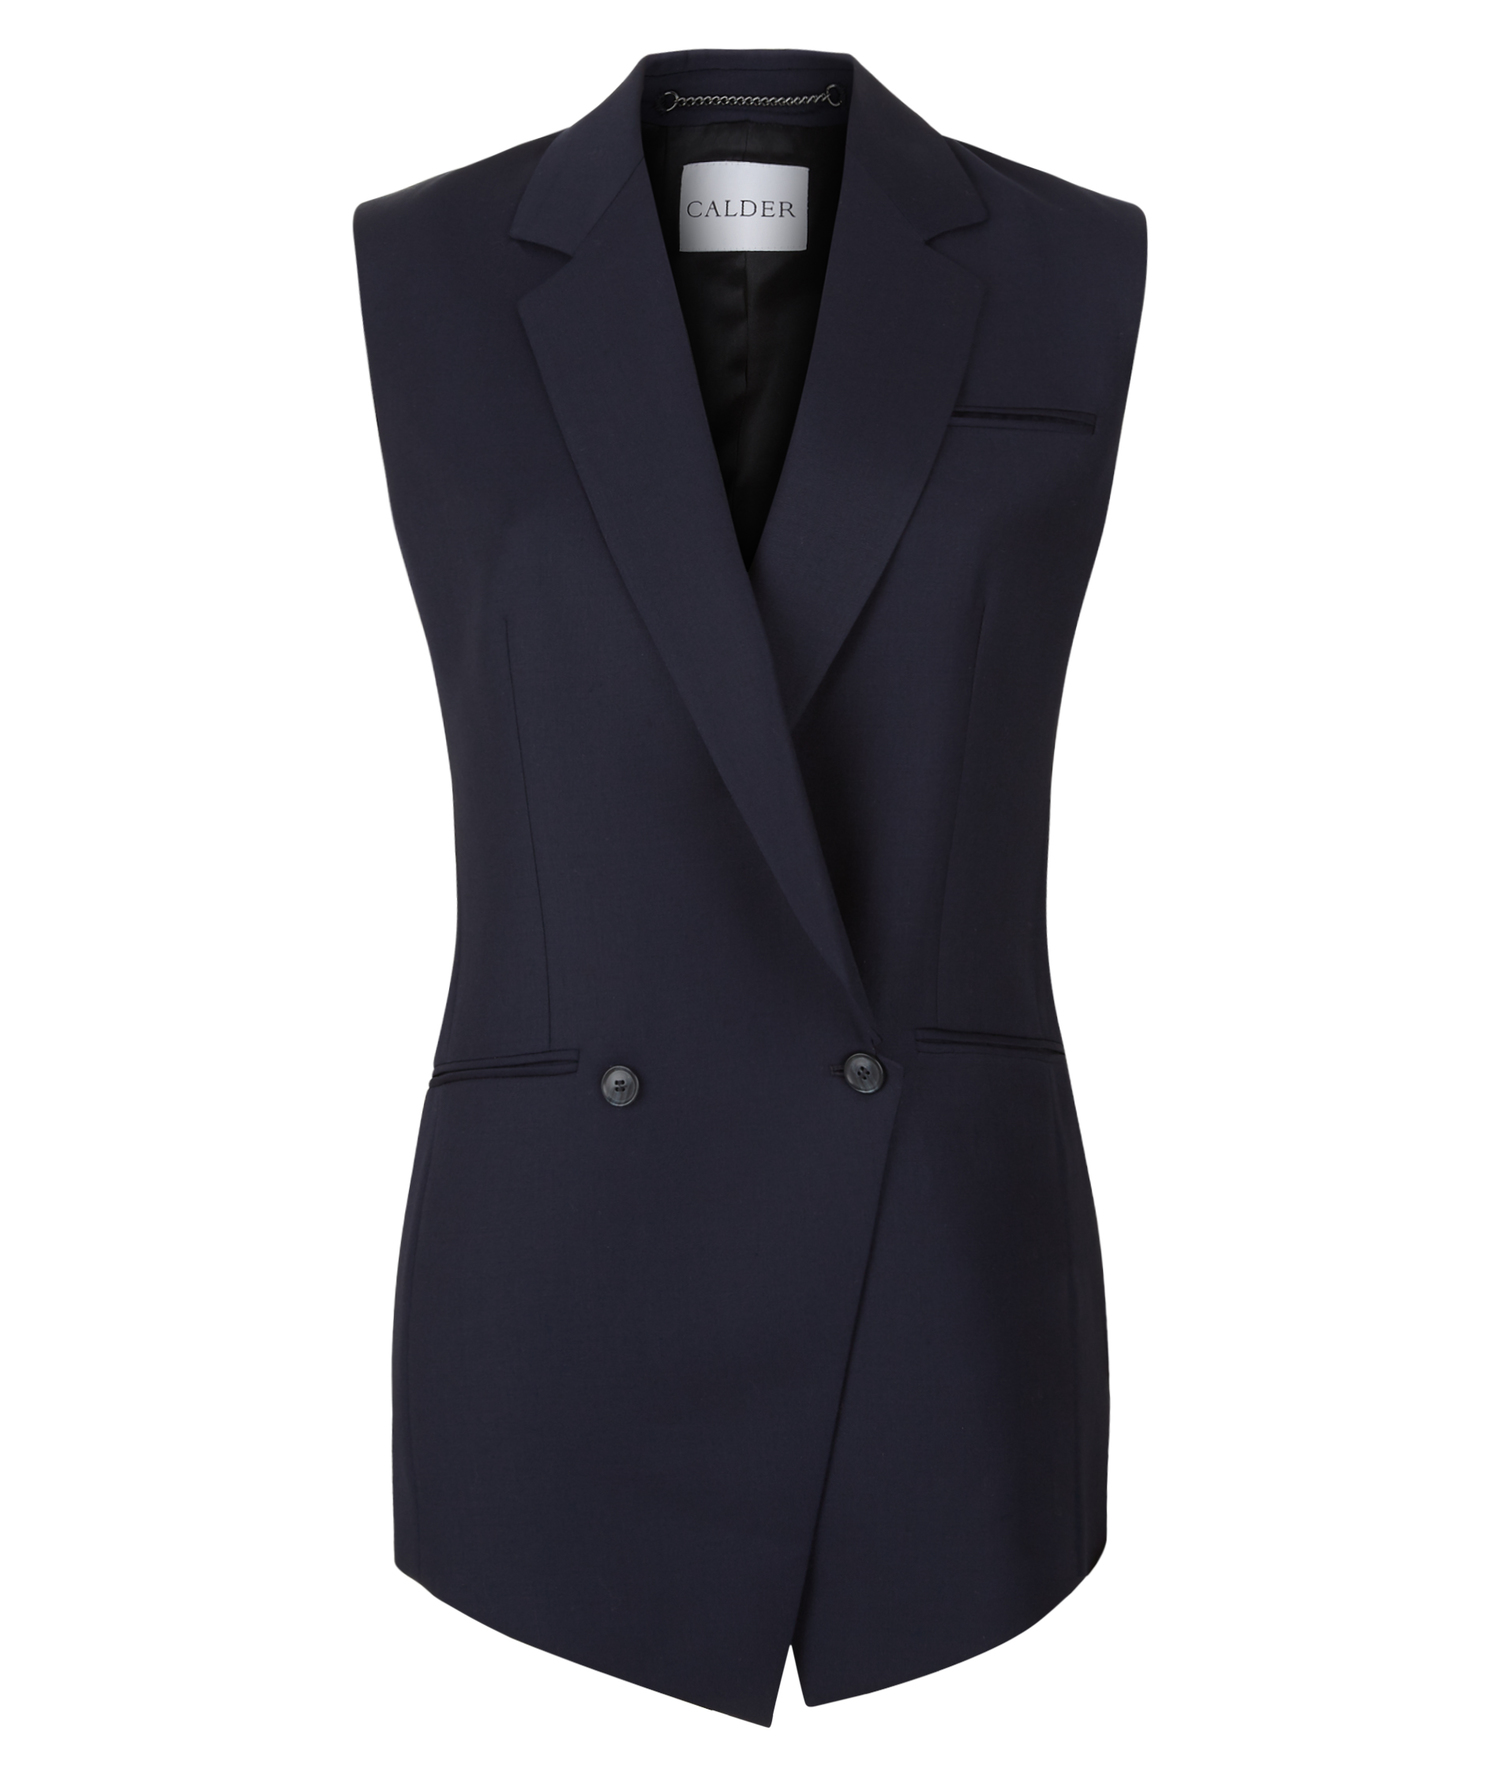 Navy+Sleeveless+Blazer_FR_1.jpg